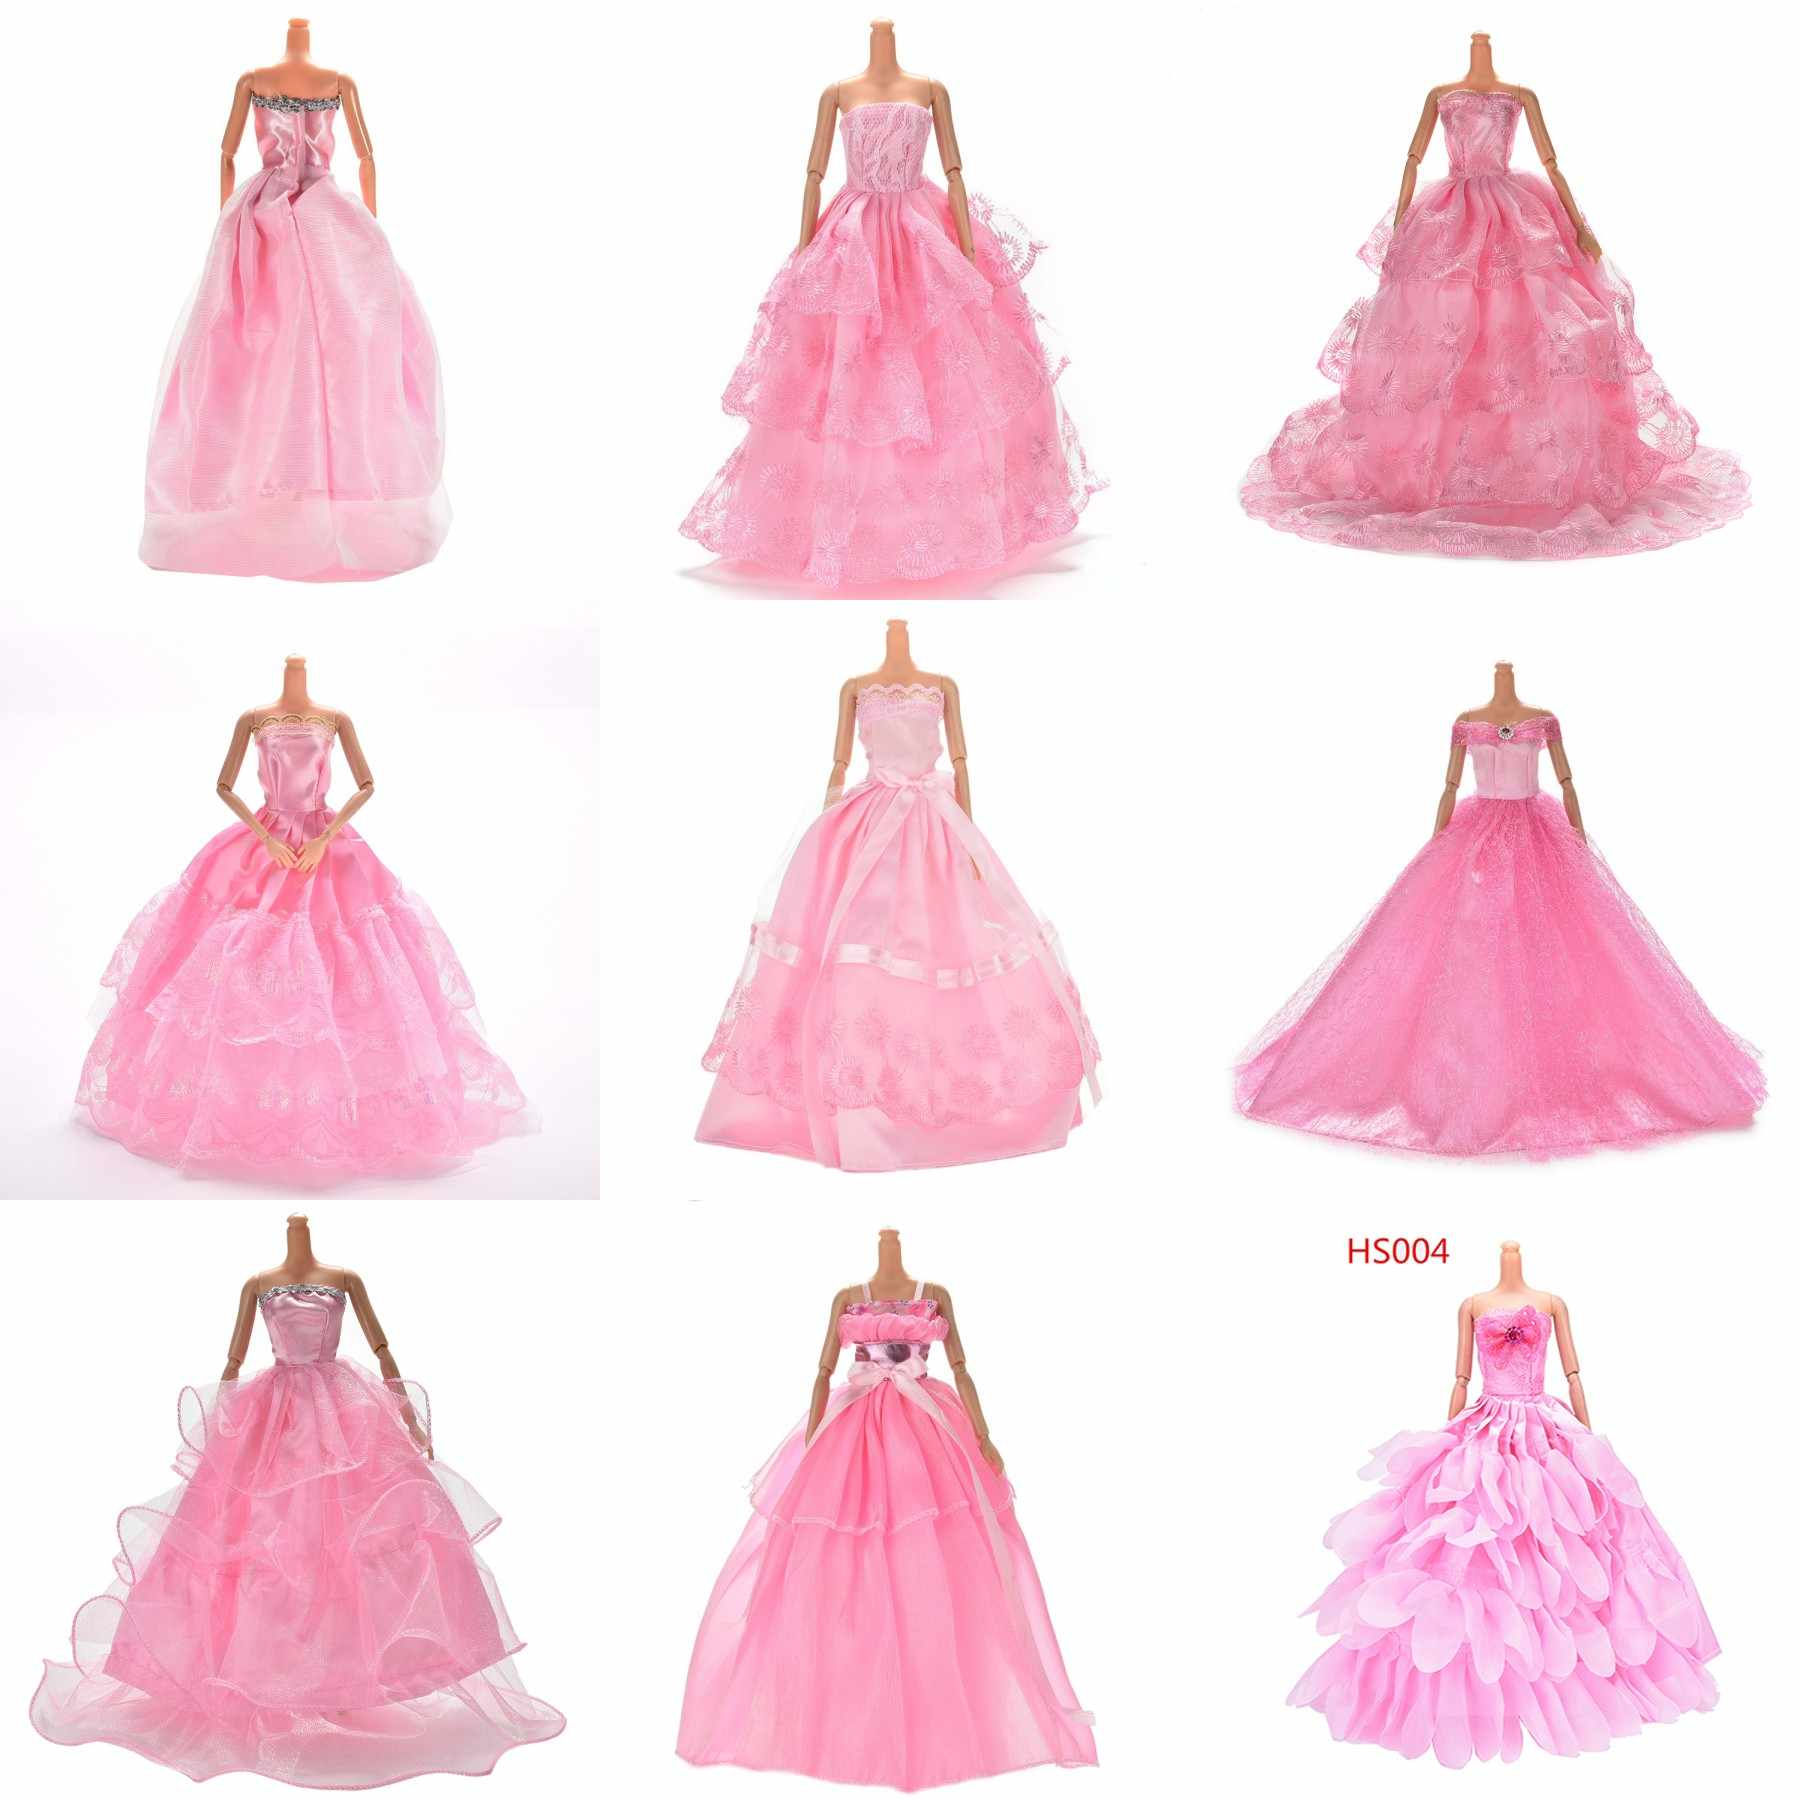 Handmade Wedding Dress Princess Evening Party Ball Long Gown Skirt Bridal Veil Clothes For Babies Doll Accessories Pink Gift Toy